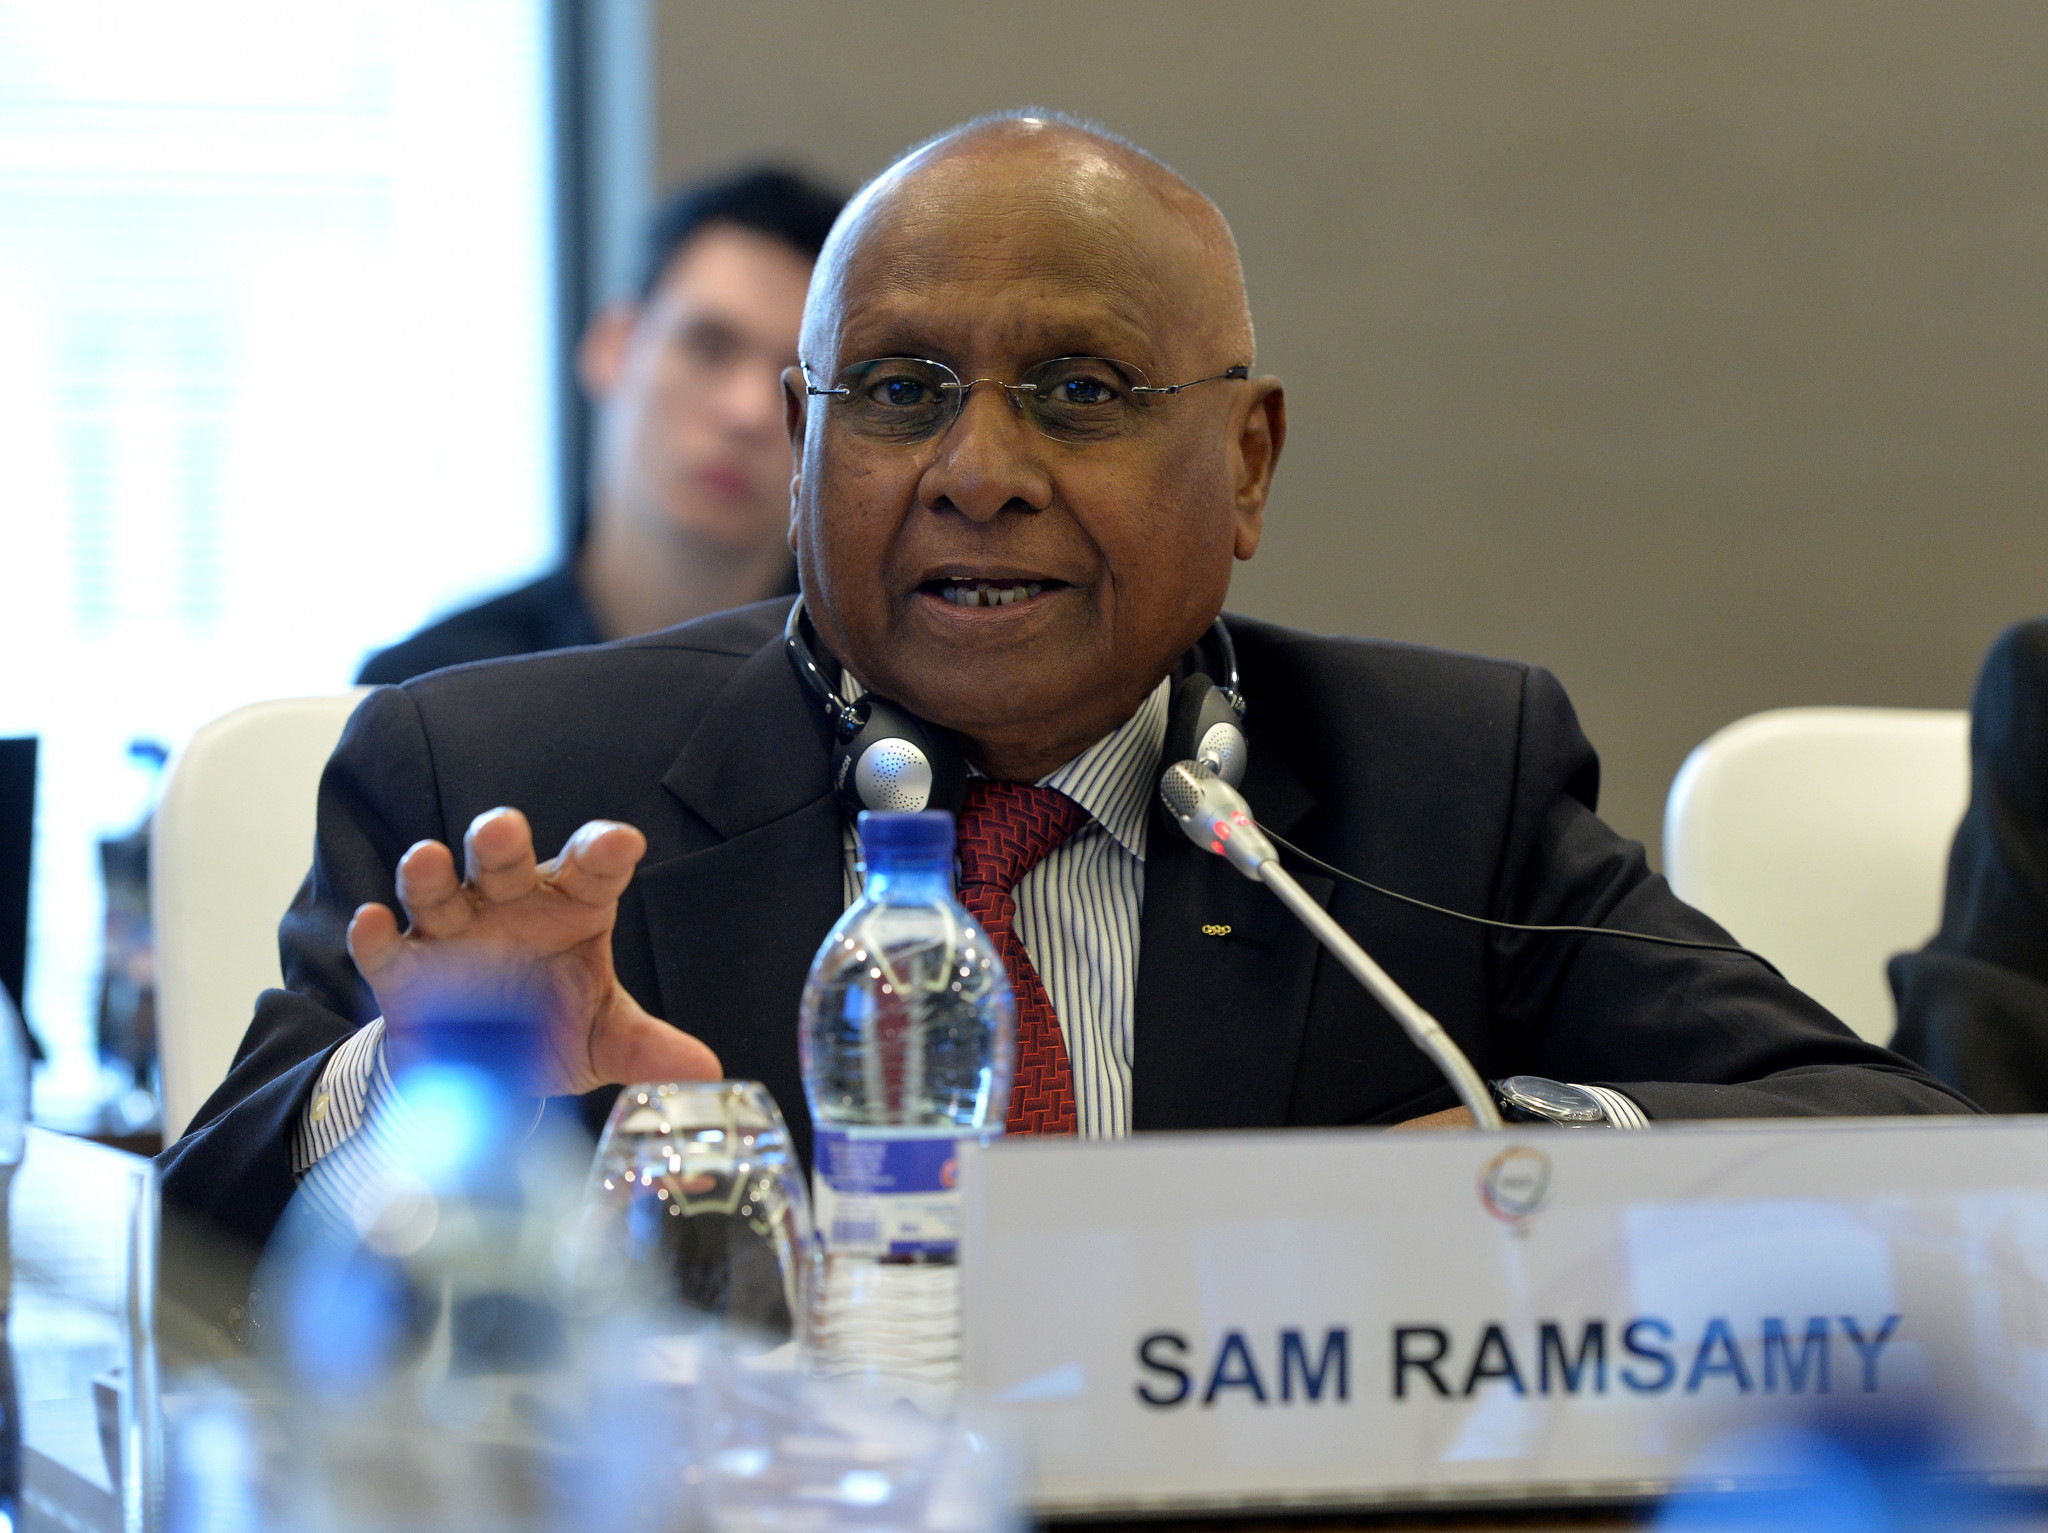 The IOC has defended its appointment of Sam Ramsamy ©Getty Images